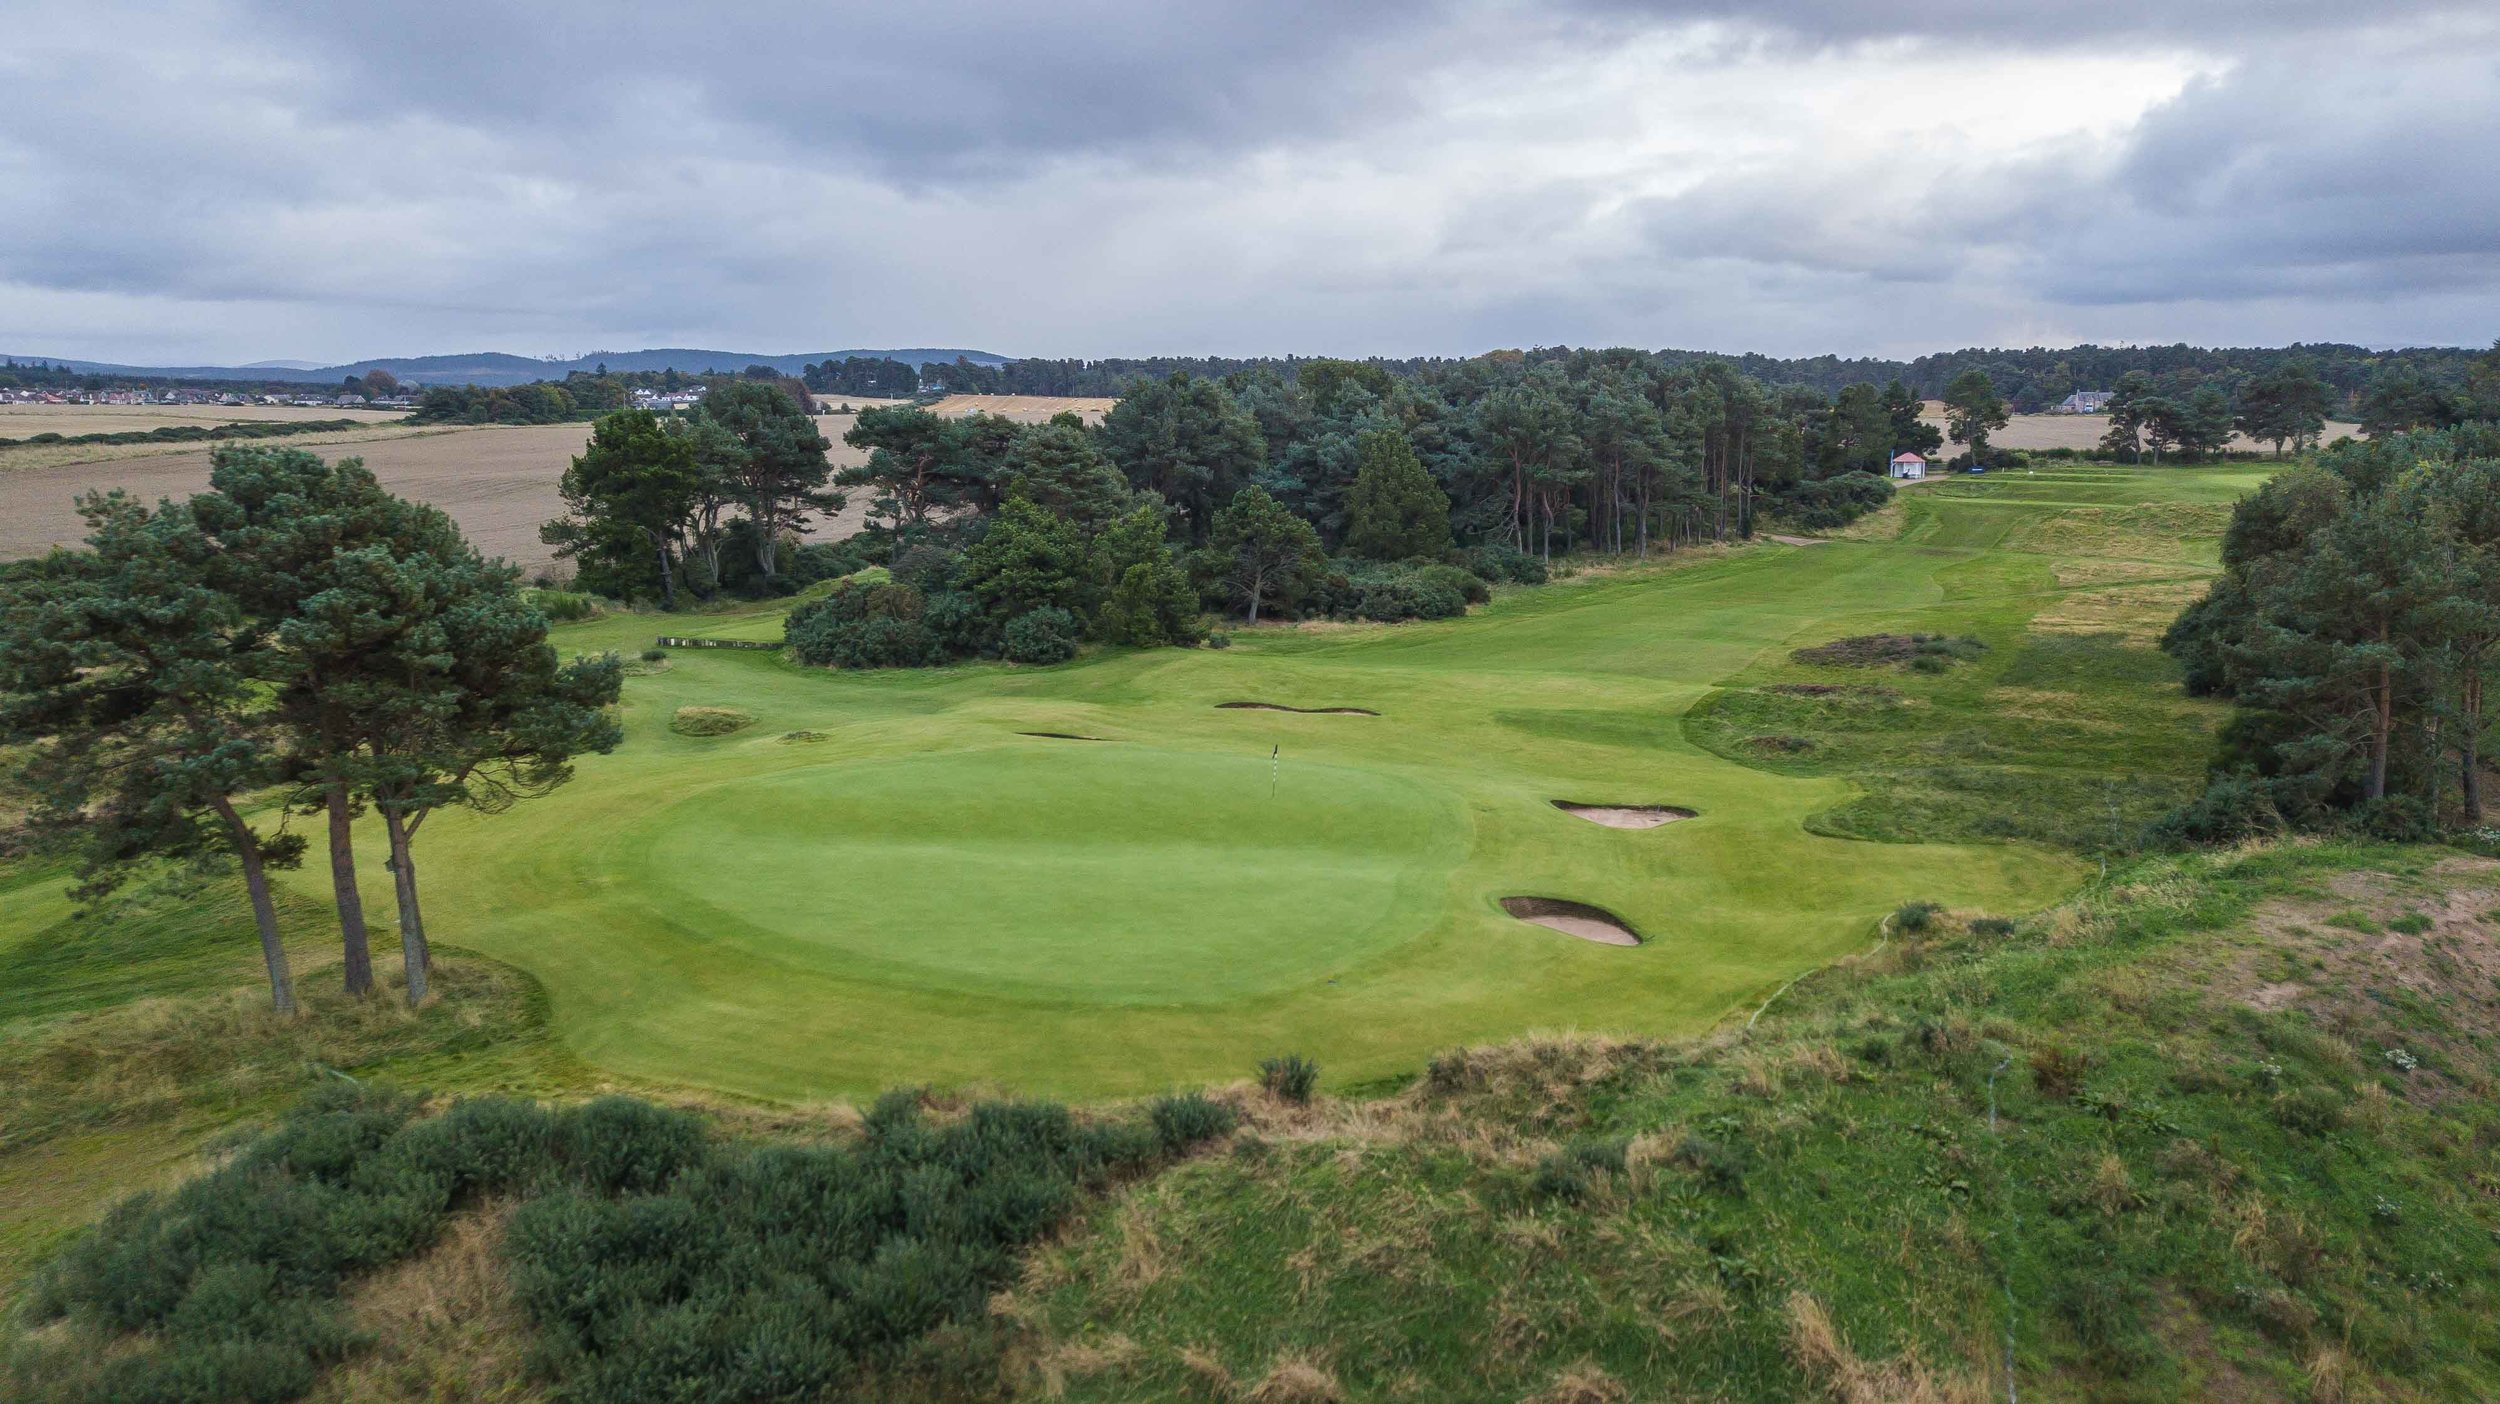 """The long 14th hole, """"kopje"""" plays downhill and difficult. Kopje is of South African origin and means small hill in a generally flat area."""